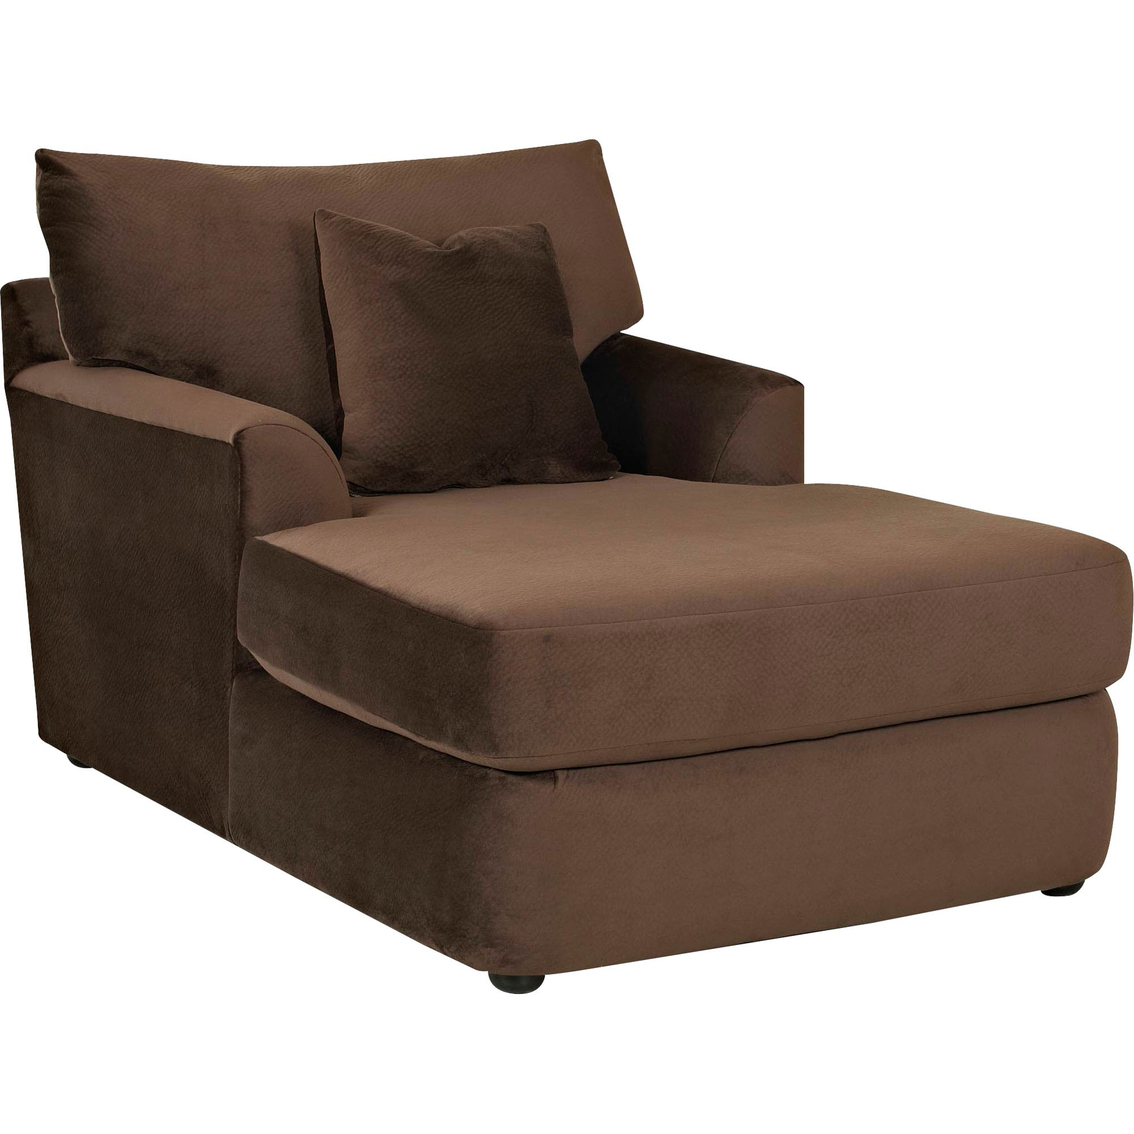 Klaussner findley chaise lounge chairs recliners for Ashley furniture chaise lounge prices